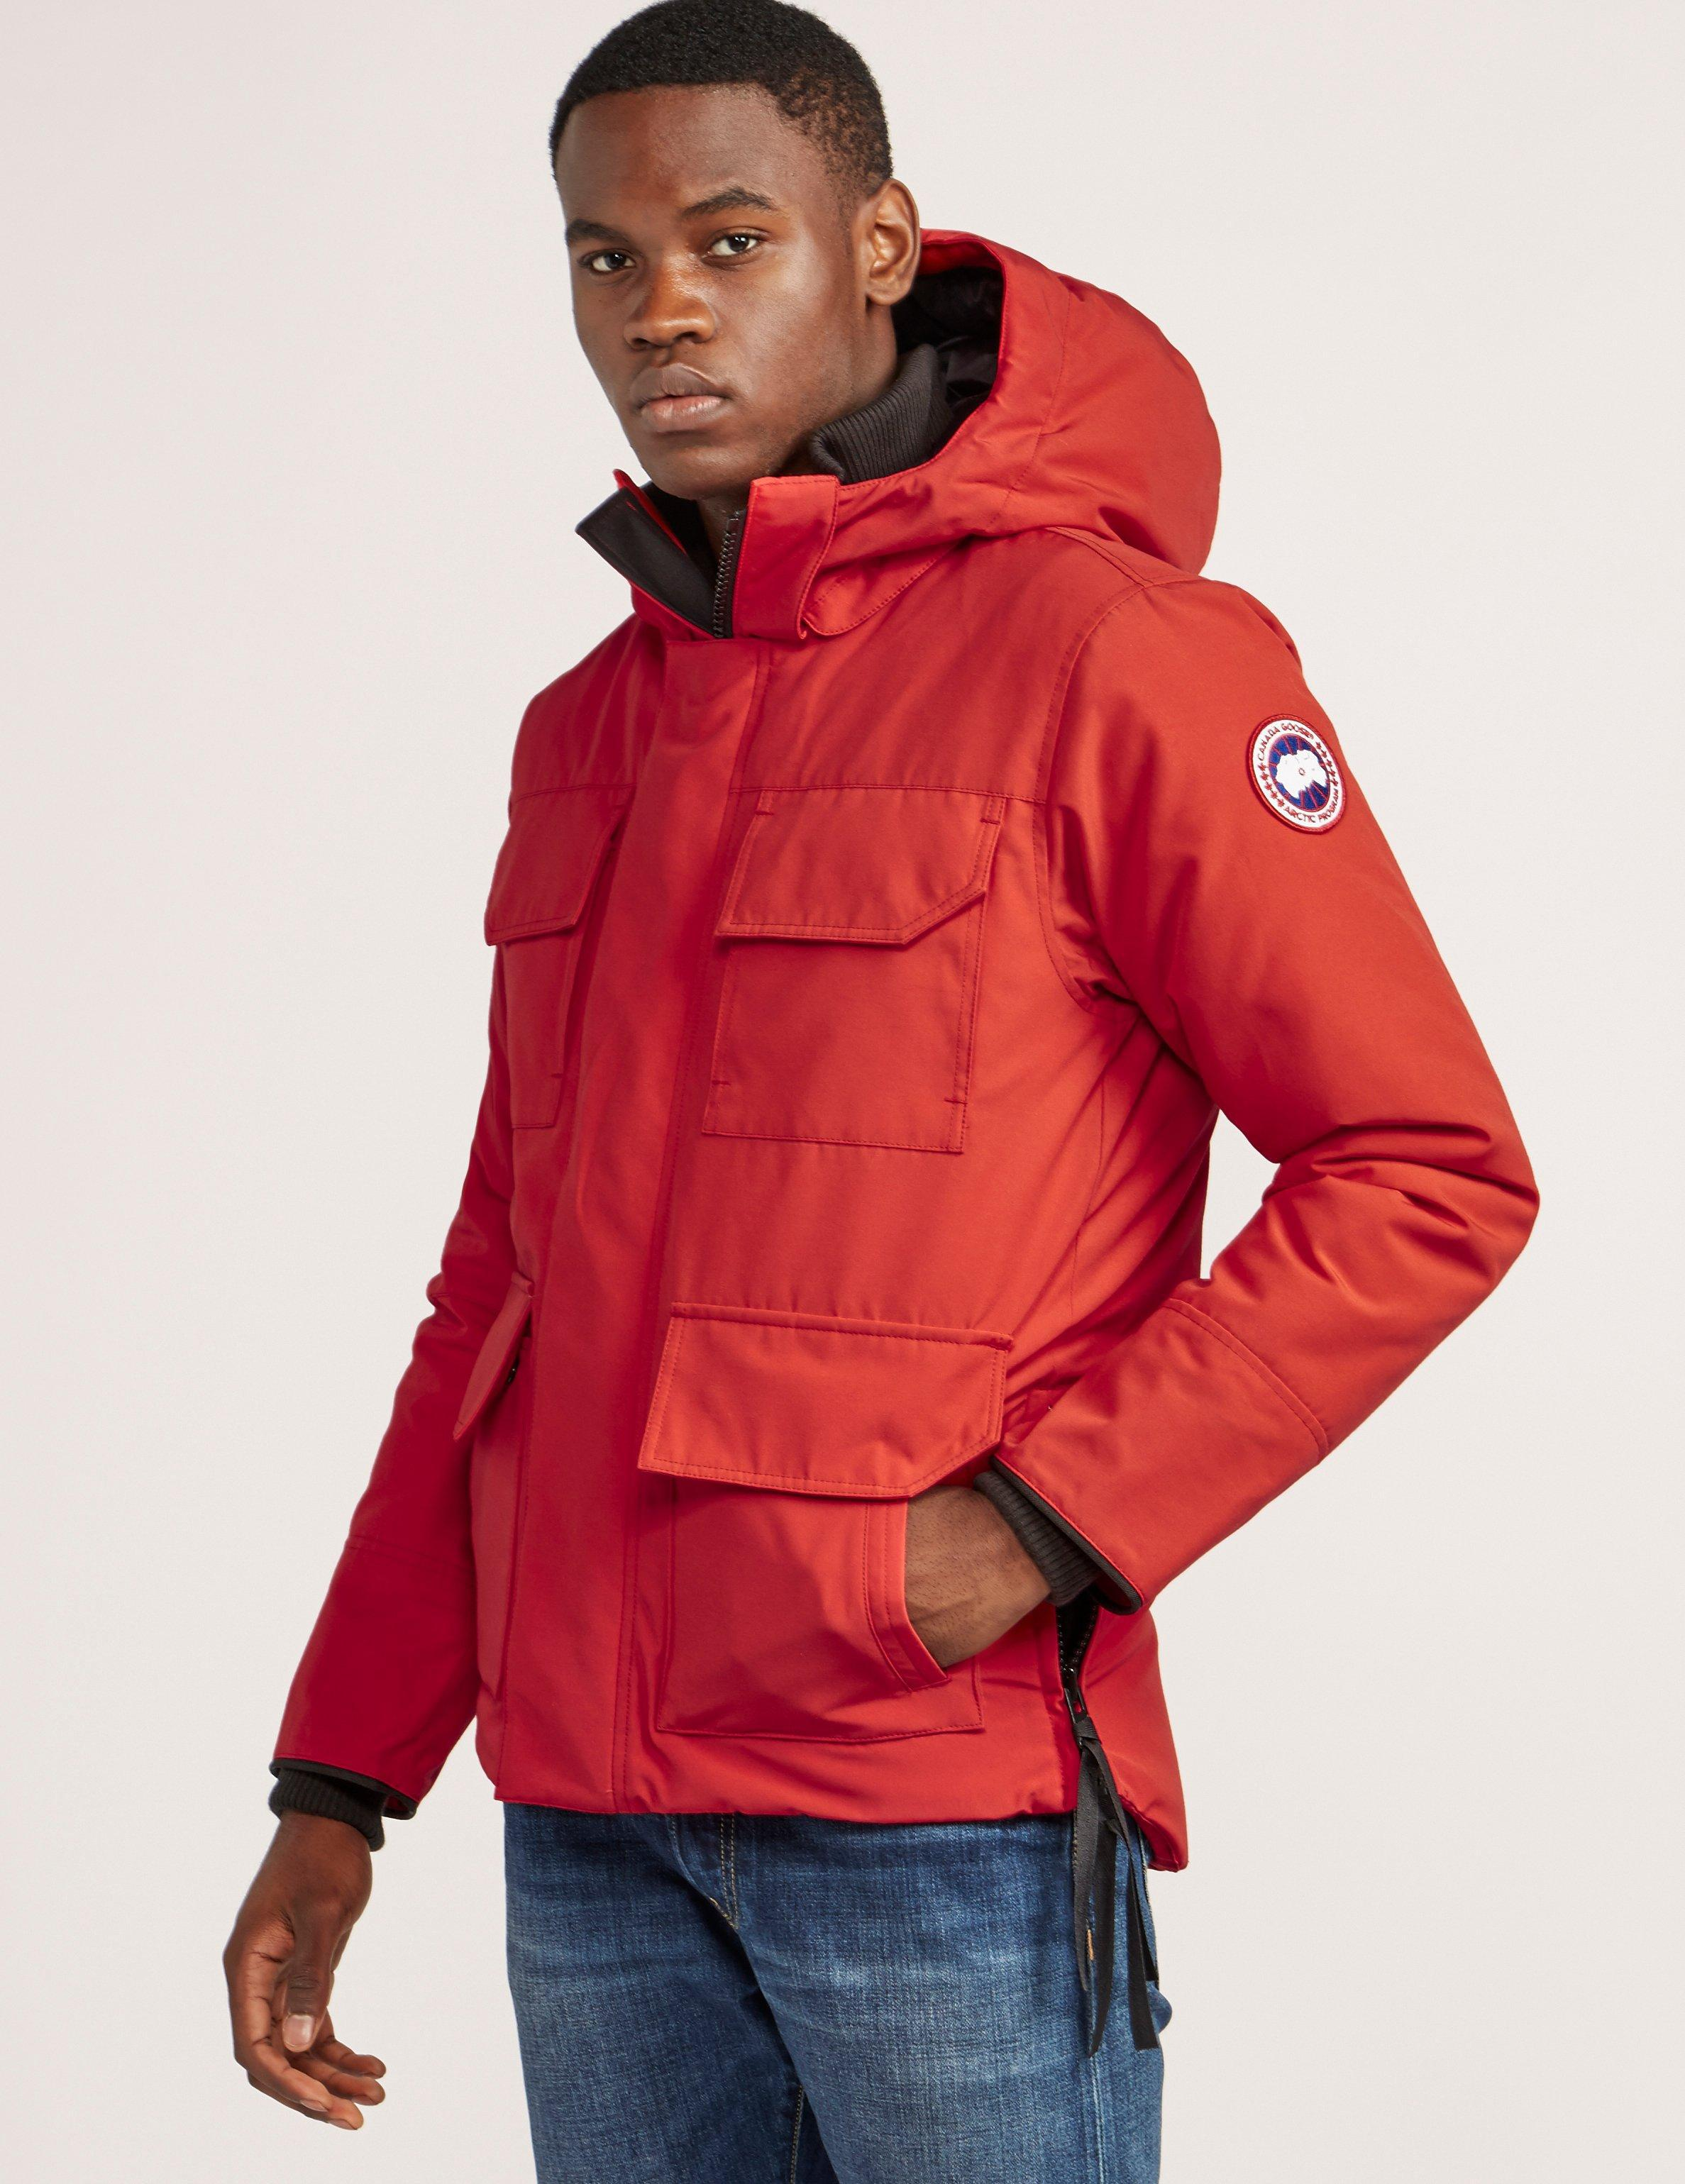 canada goose red jacket mens